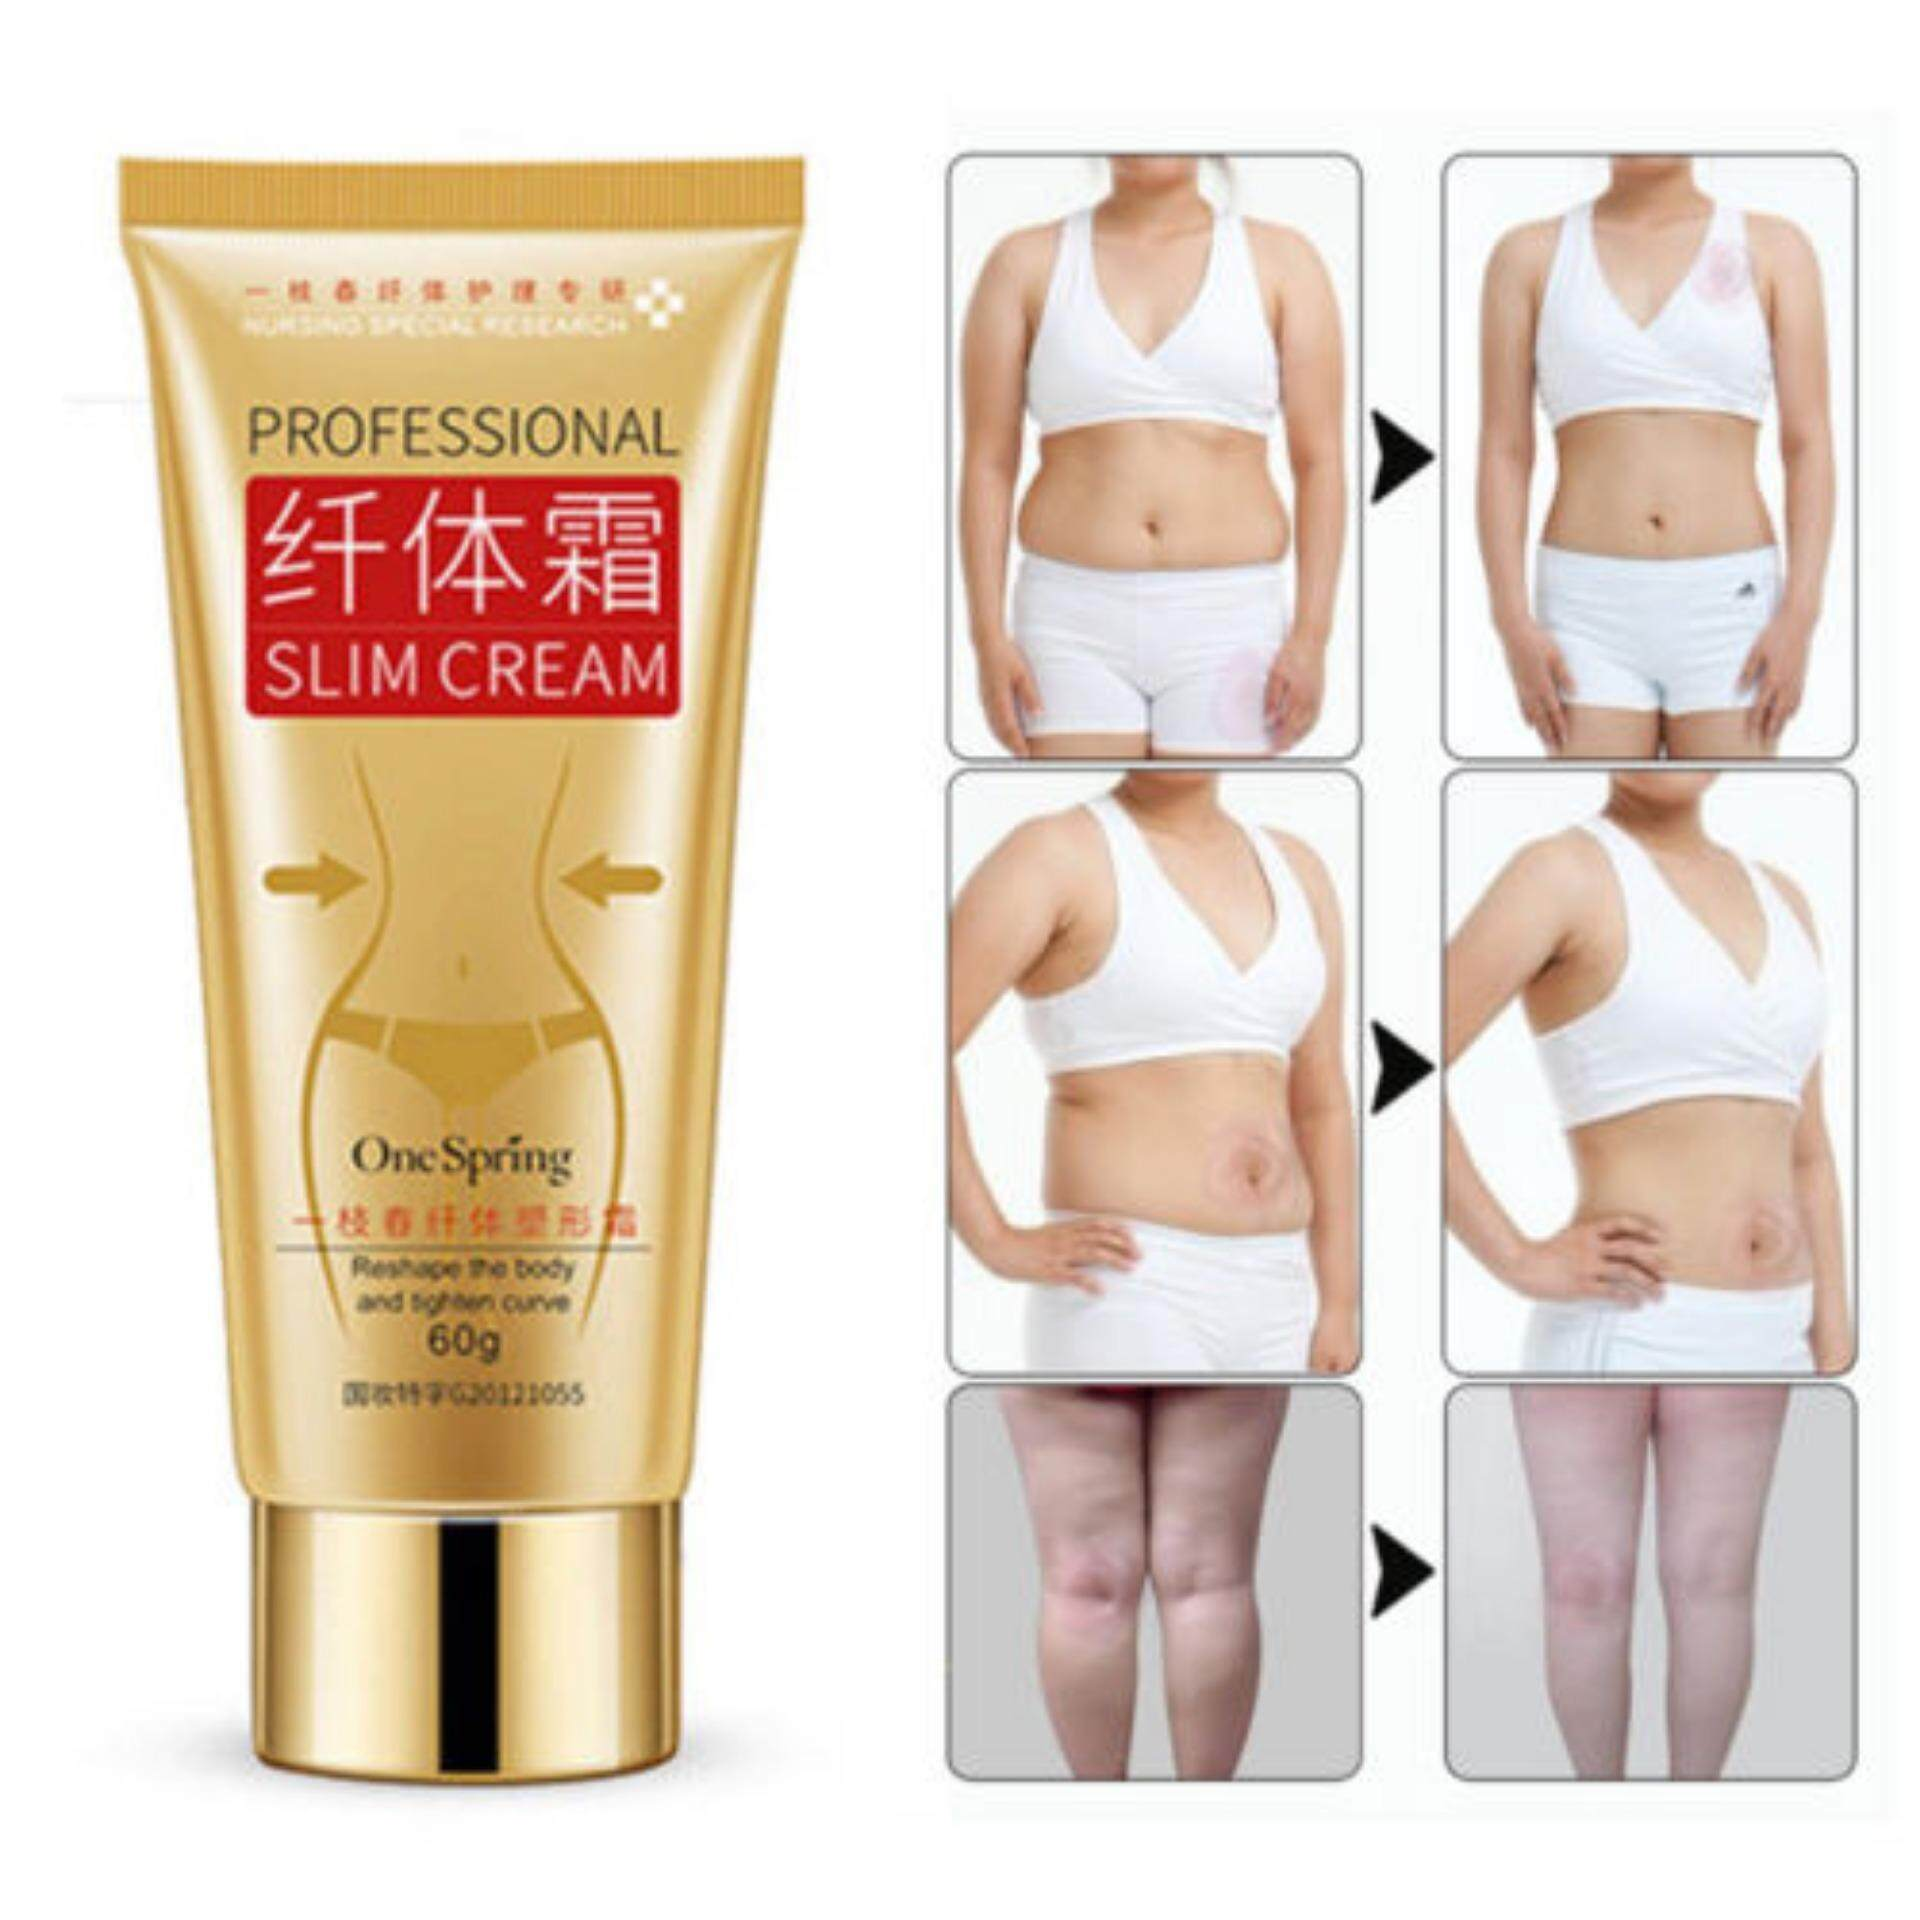 Food Supplements Weight Management Products Buy Meizitang Slimming Tea 100 Originalslimming Cream Women Fat Burning Losing Body 60g